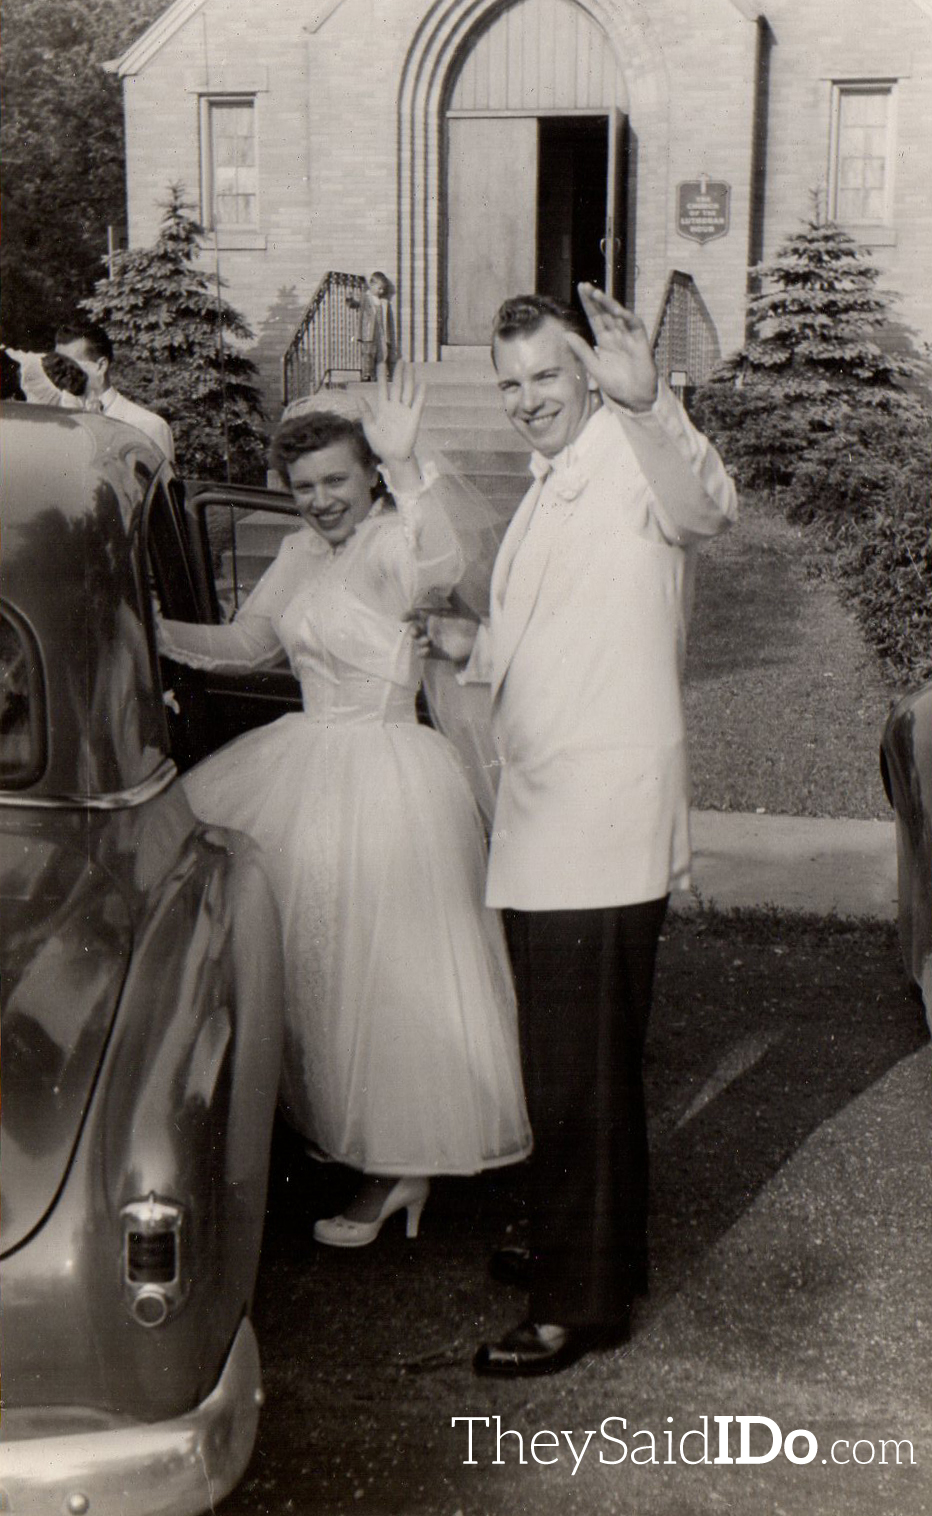 1950s Chicagoland Wedding by Henry Jankowski {TheySaidIDo.com}